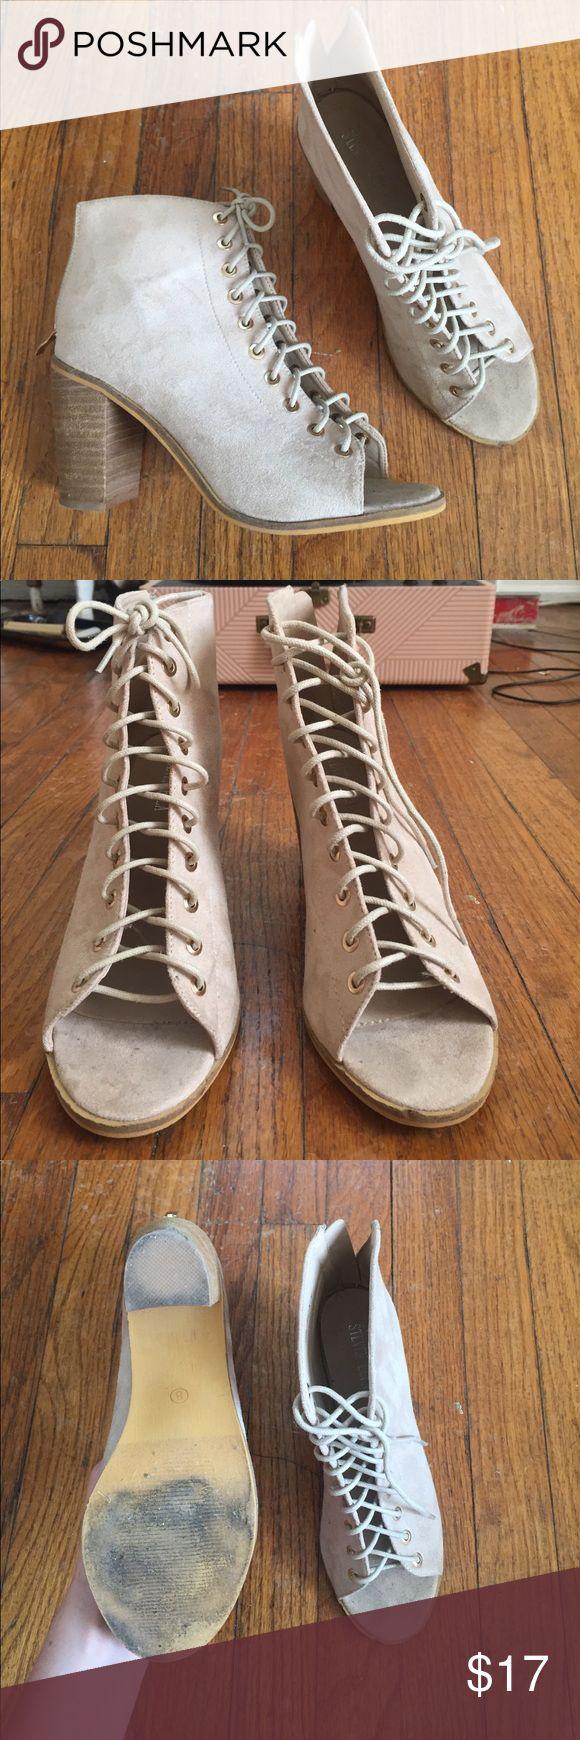 Lace Up Sandals Suede, lace-up sandals. Good condition, worn once or twice. Jeffery Campbell Dupe. Steven Ella Shoes Sandals